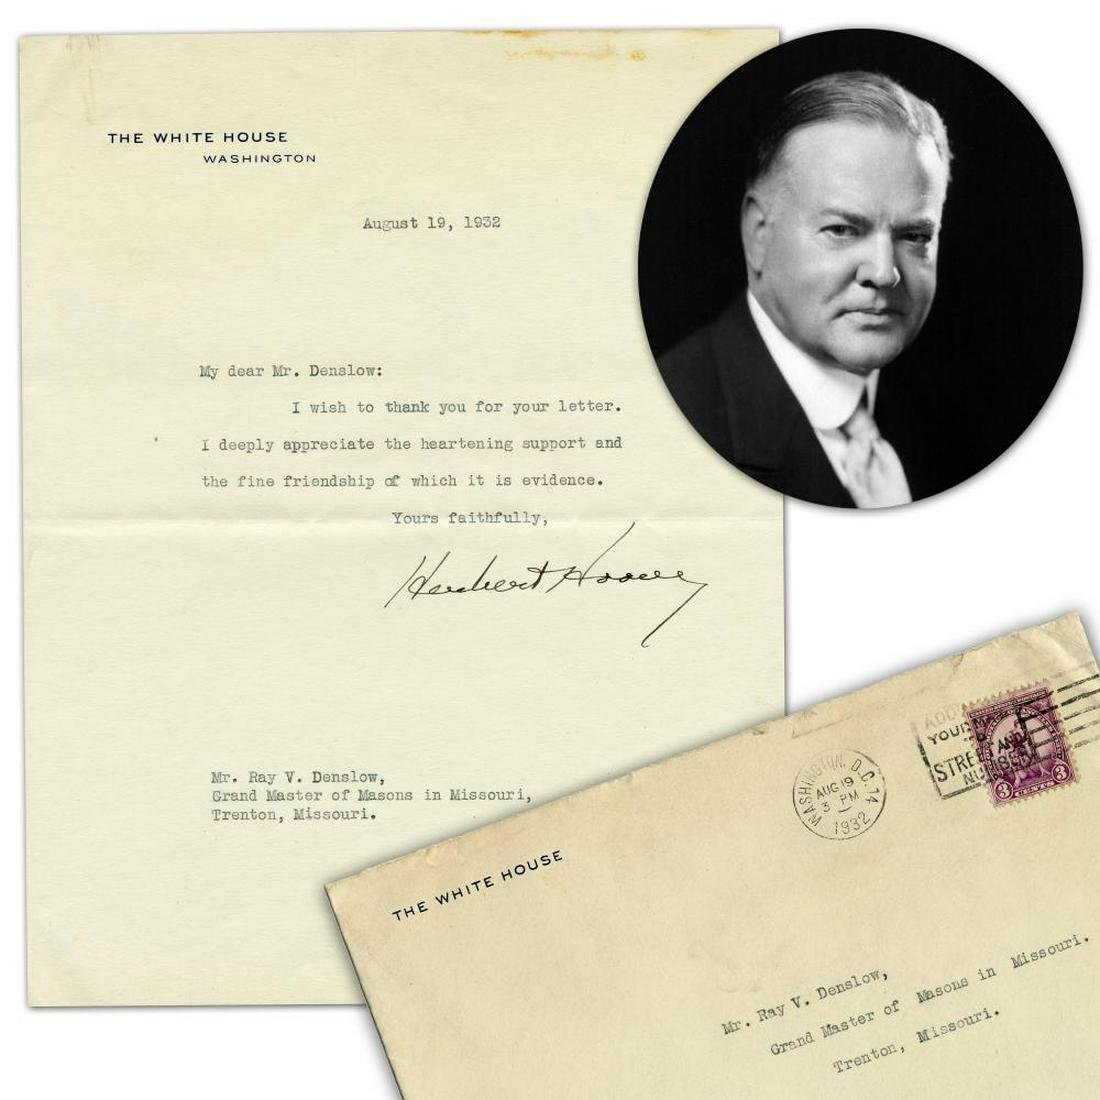 Herbert Hoover TLS to Grand Master of Masons in